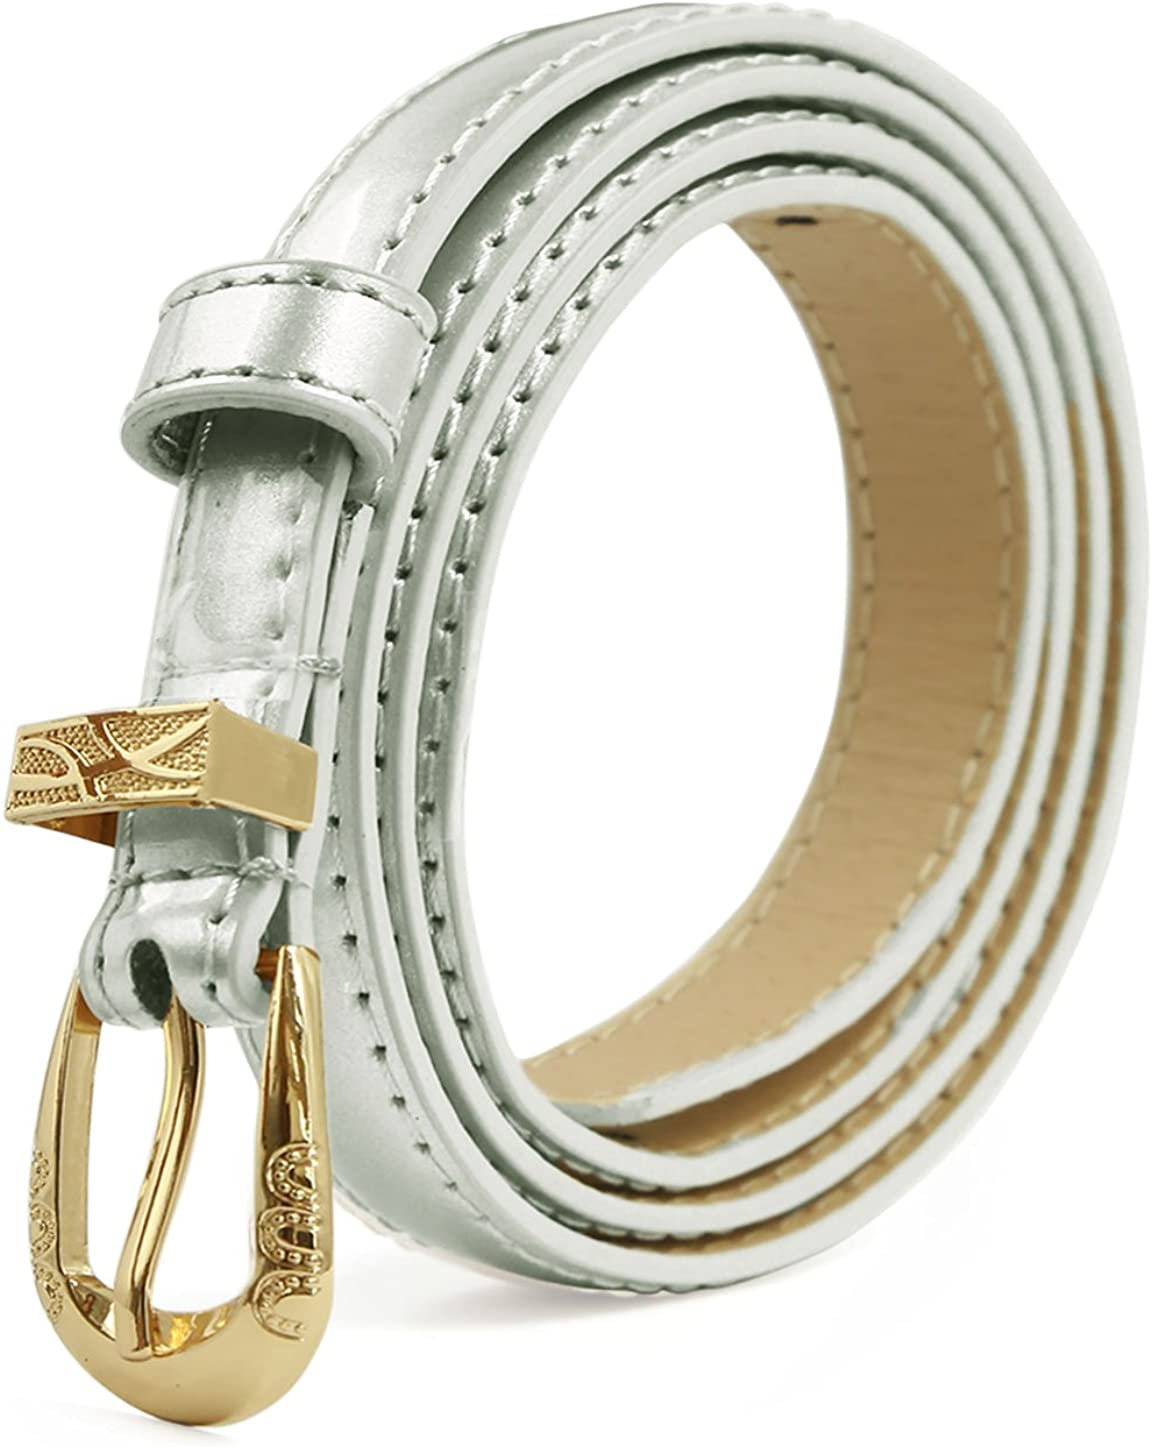 uxcell Womens Patent Leather PU Skinny Waist Belt for Jeans with Alloy Buckle